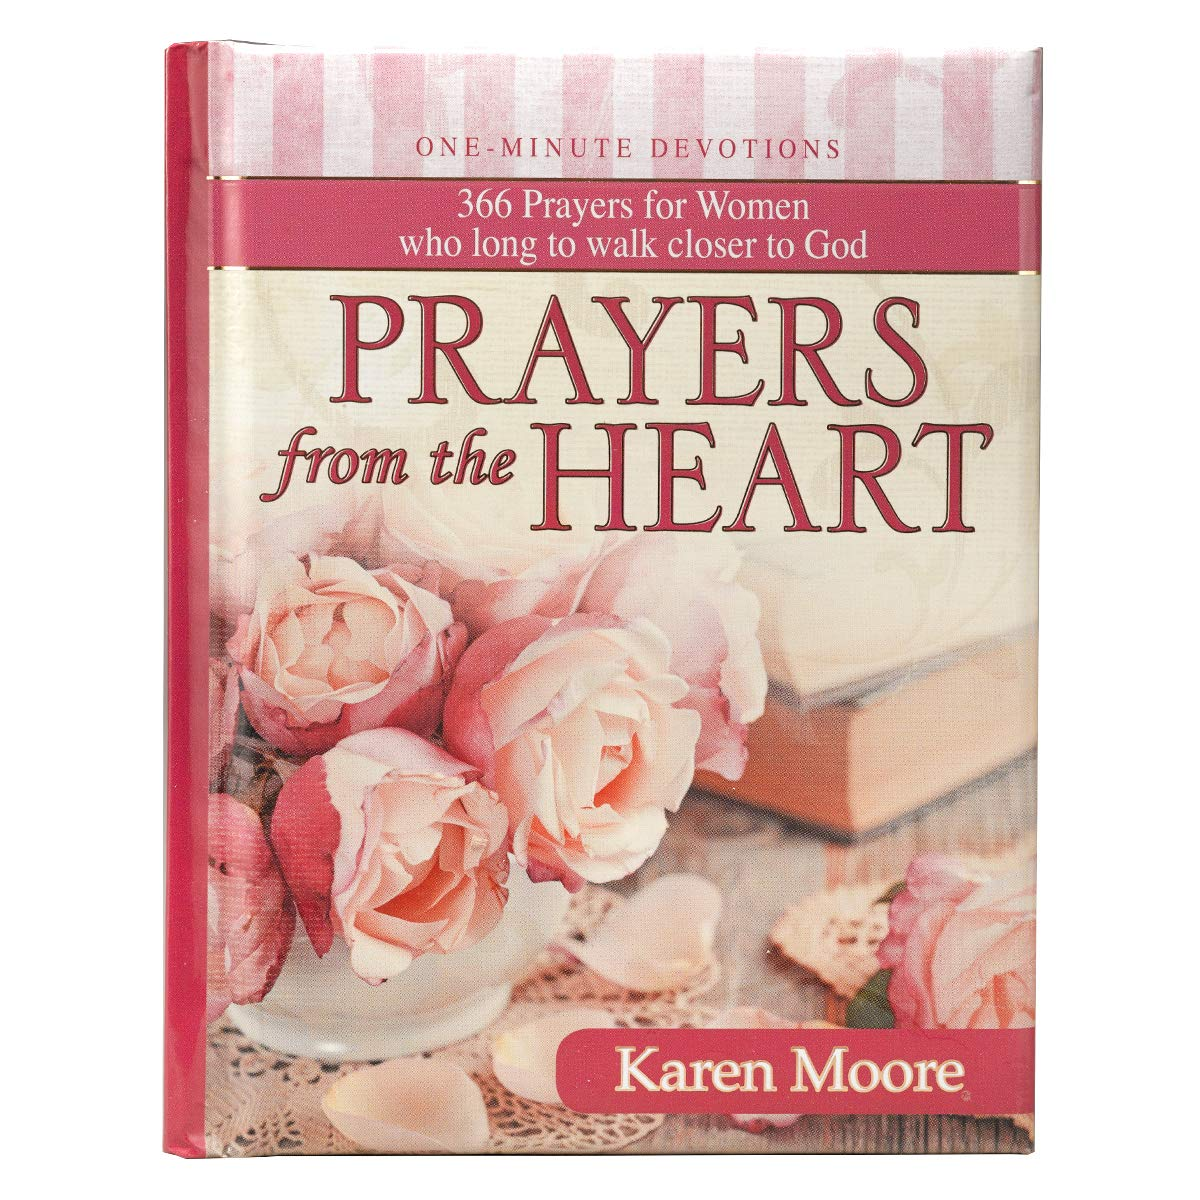 Prayers from the Heart: One-Minute Devotions: Karen Moore: 9781432109929:  Amazon.com: Books